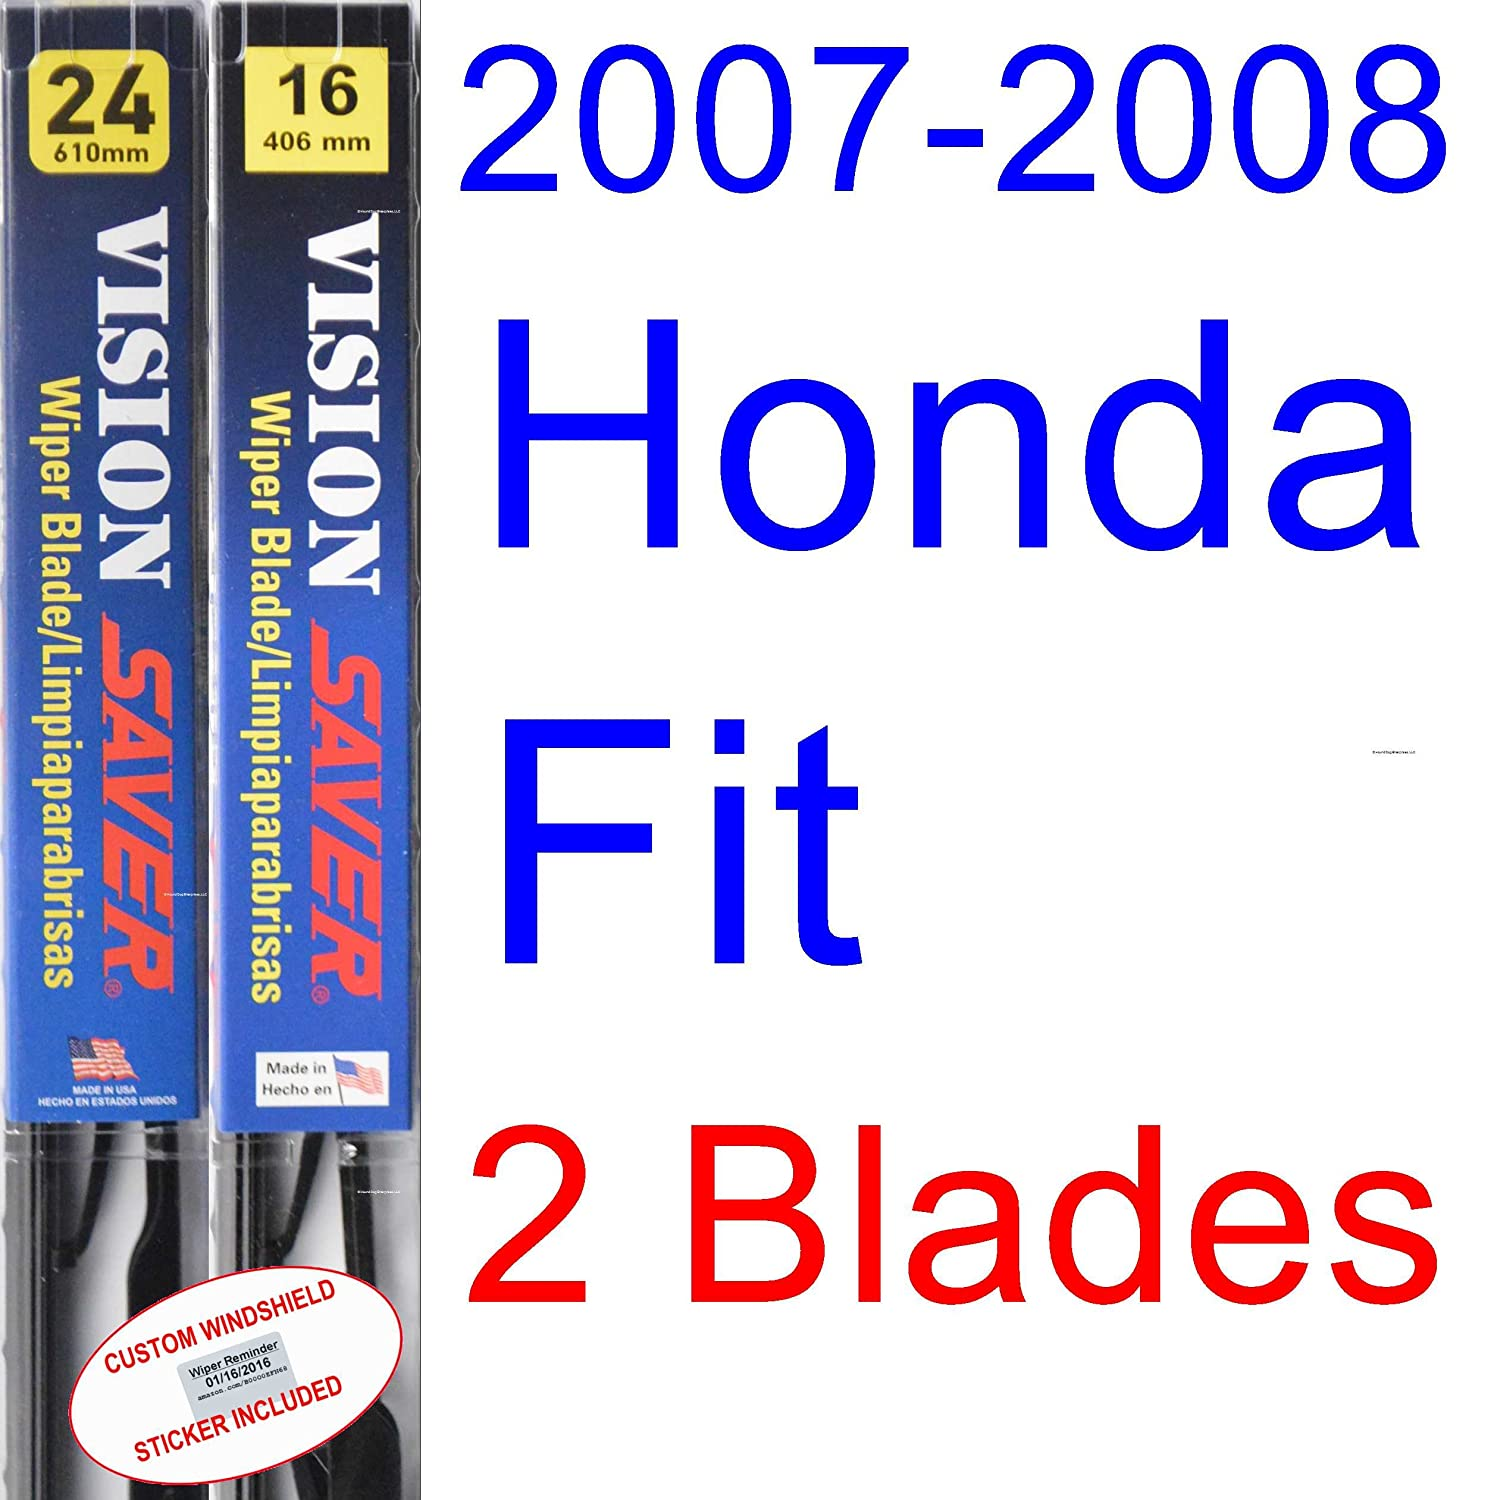 Amazon.com: 2007-2008 Honda Fit Replacement Wiper Blade Set/Kit (Set of 3 Blades) (Saver Automotive Products-Vision Saver): Automotive